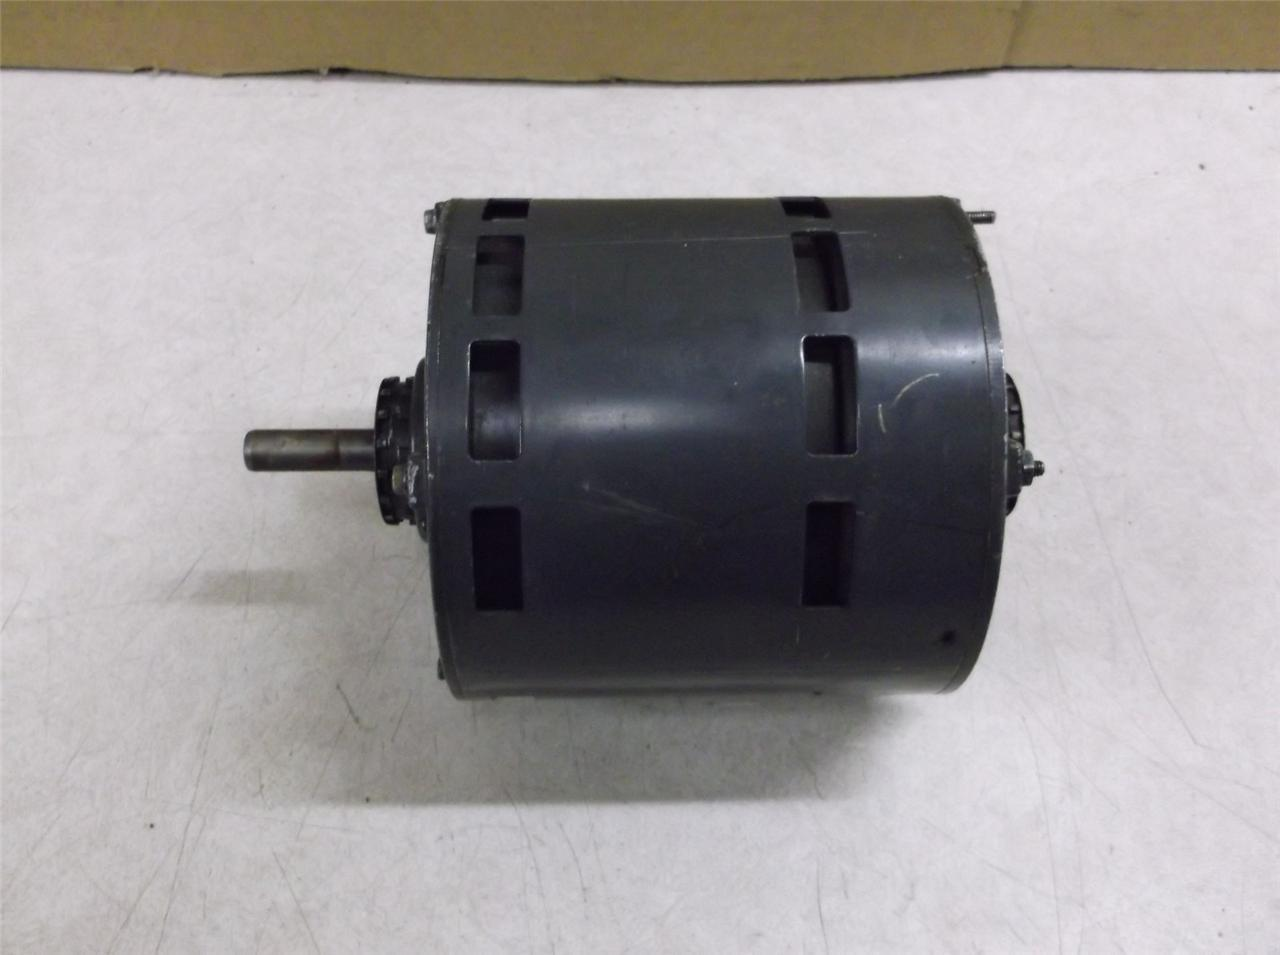 General electric 5xbh00cd 1 3 hp motor daves industrial for Dc motor 1 3 hp